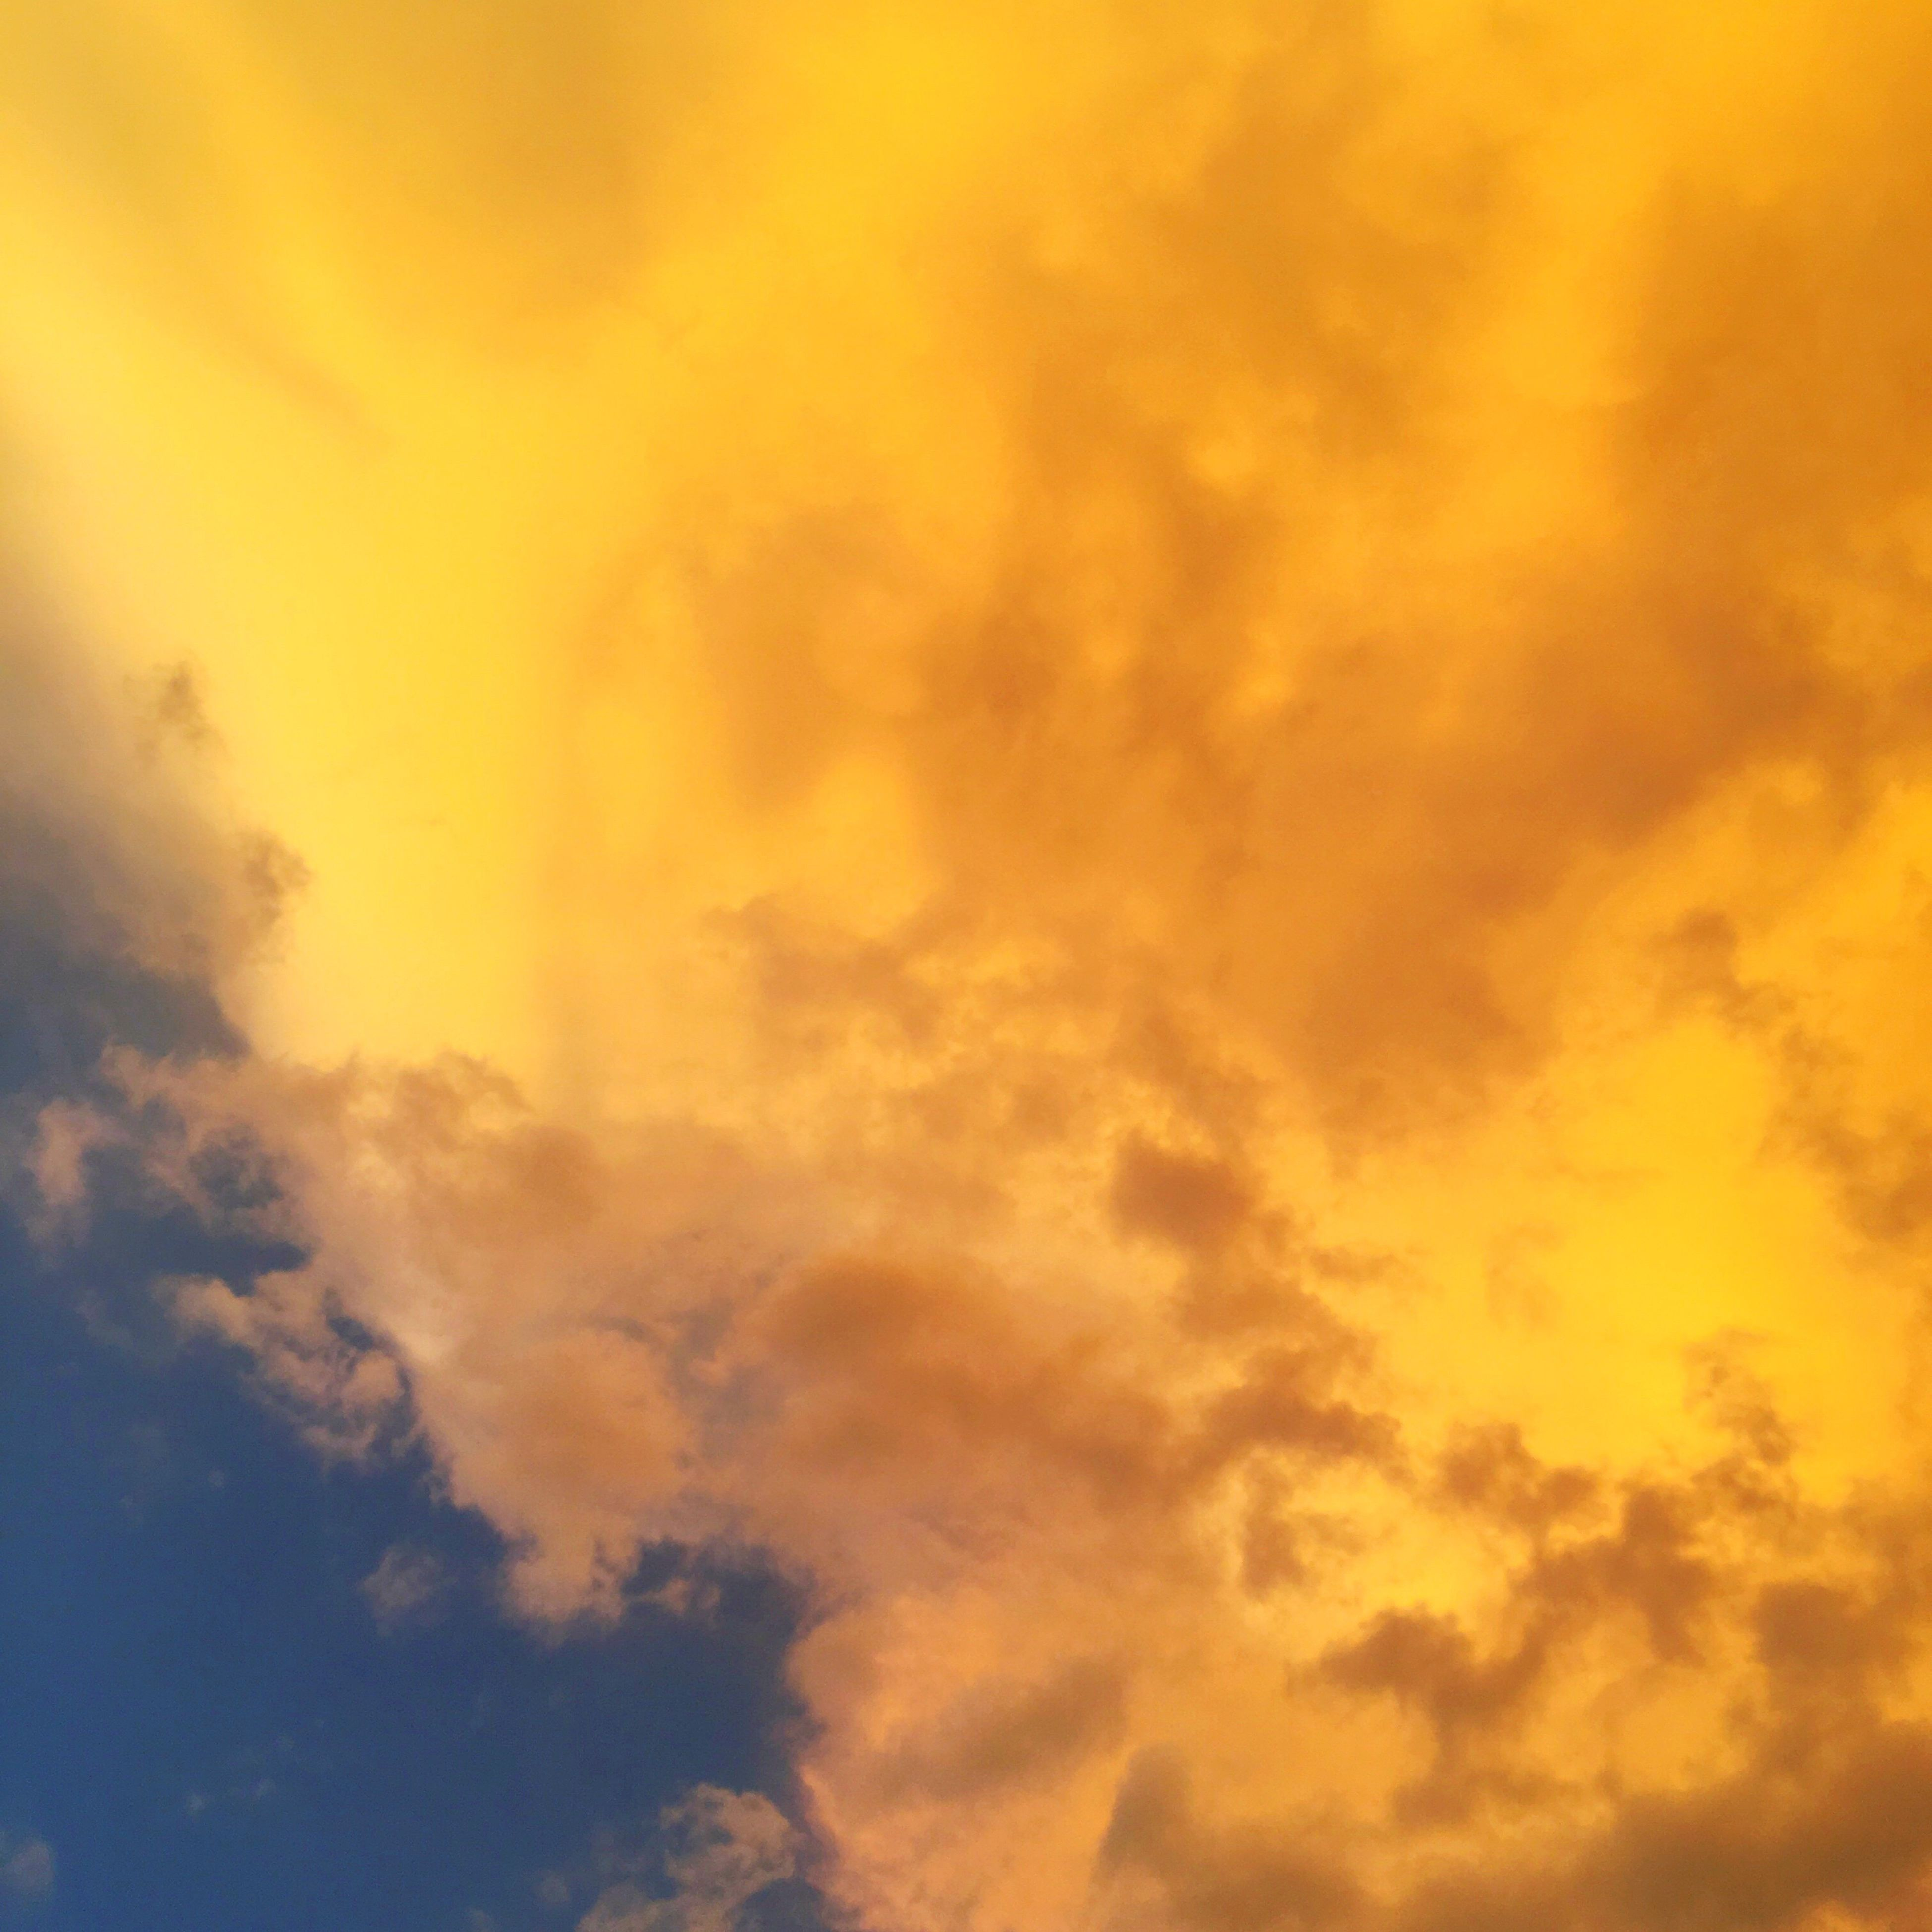 beauty in nature, nature, low angle view, sky, cloud - sky, dramatic sky, scenics, no people, majestic, sky only, tranquility, cloudscape, weather, tranquil scene, sunset, outdoors, environment, idyllic, backgrounds, day, tree